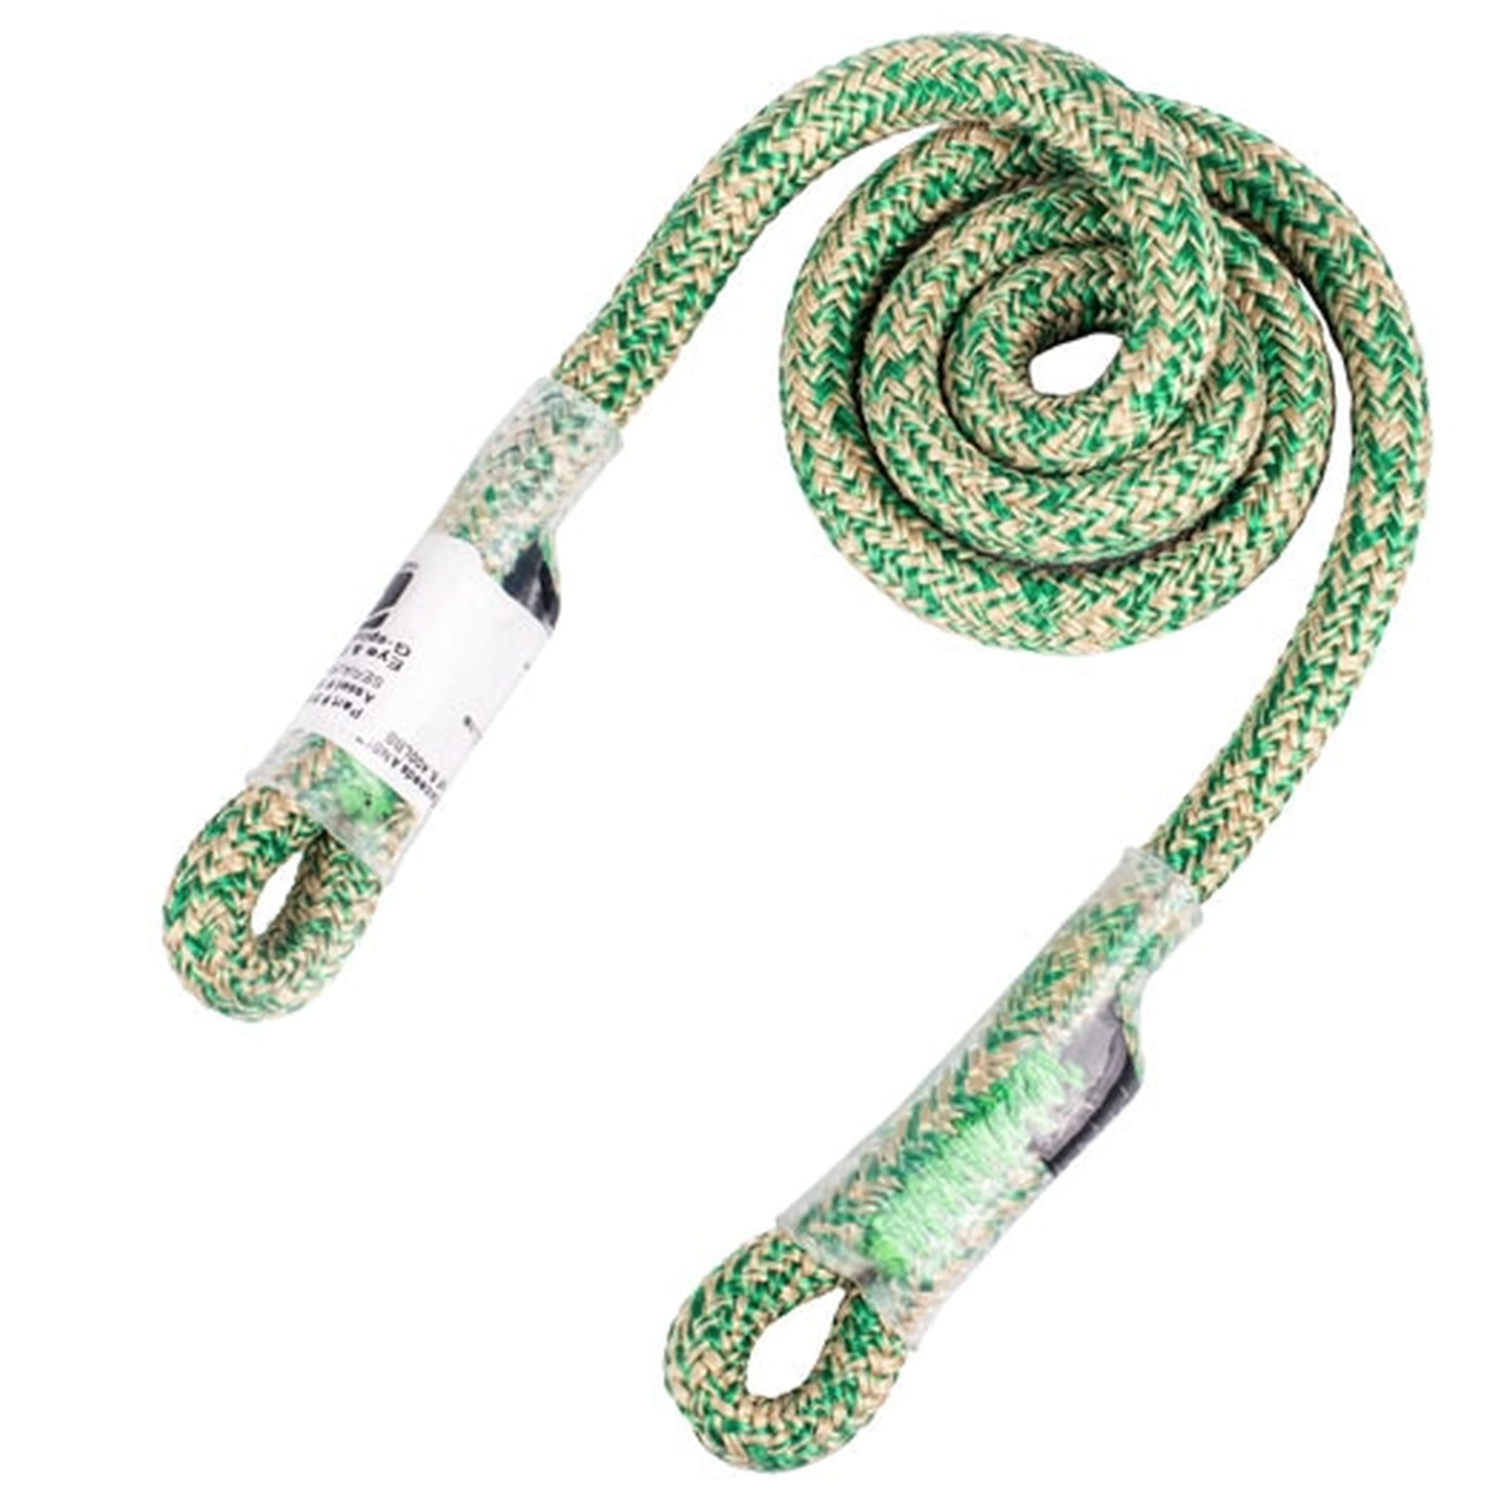 Notch Rope By The Foot Wrap Star 8.1mm